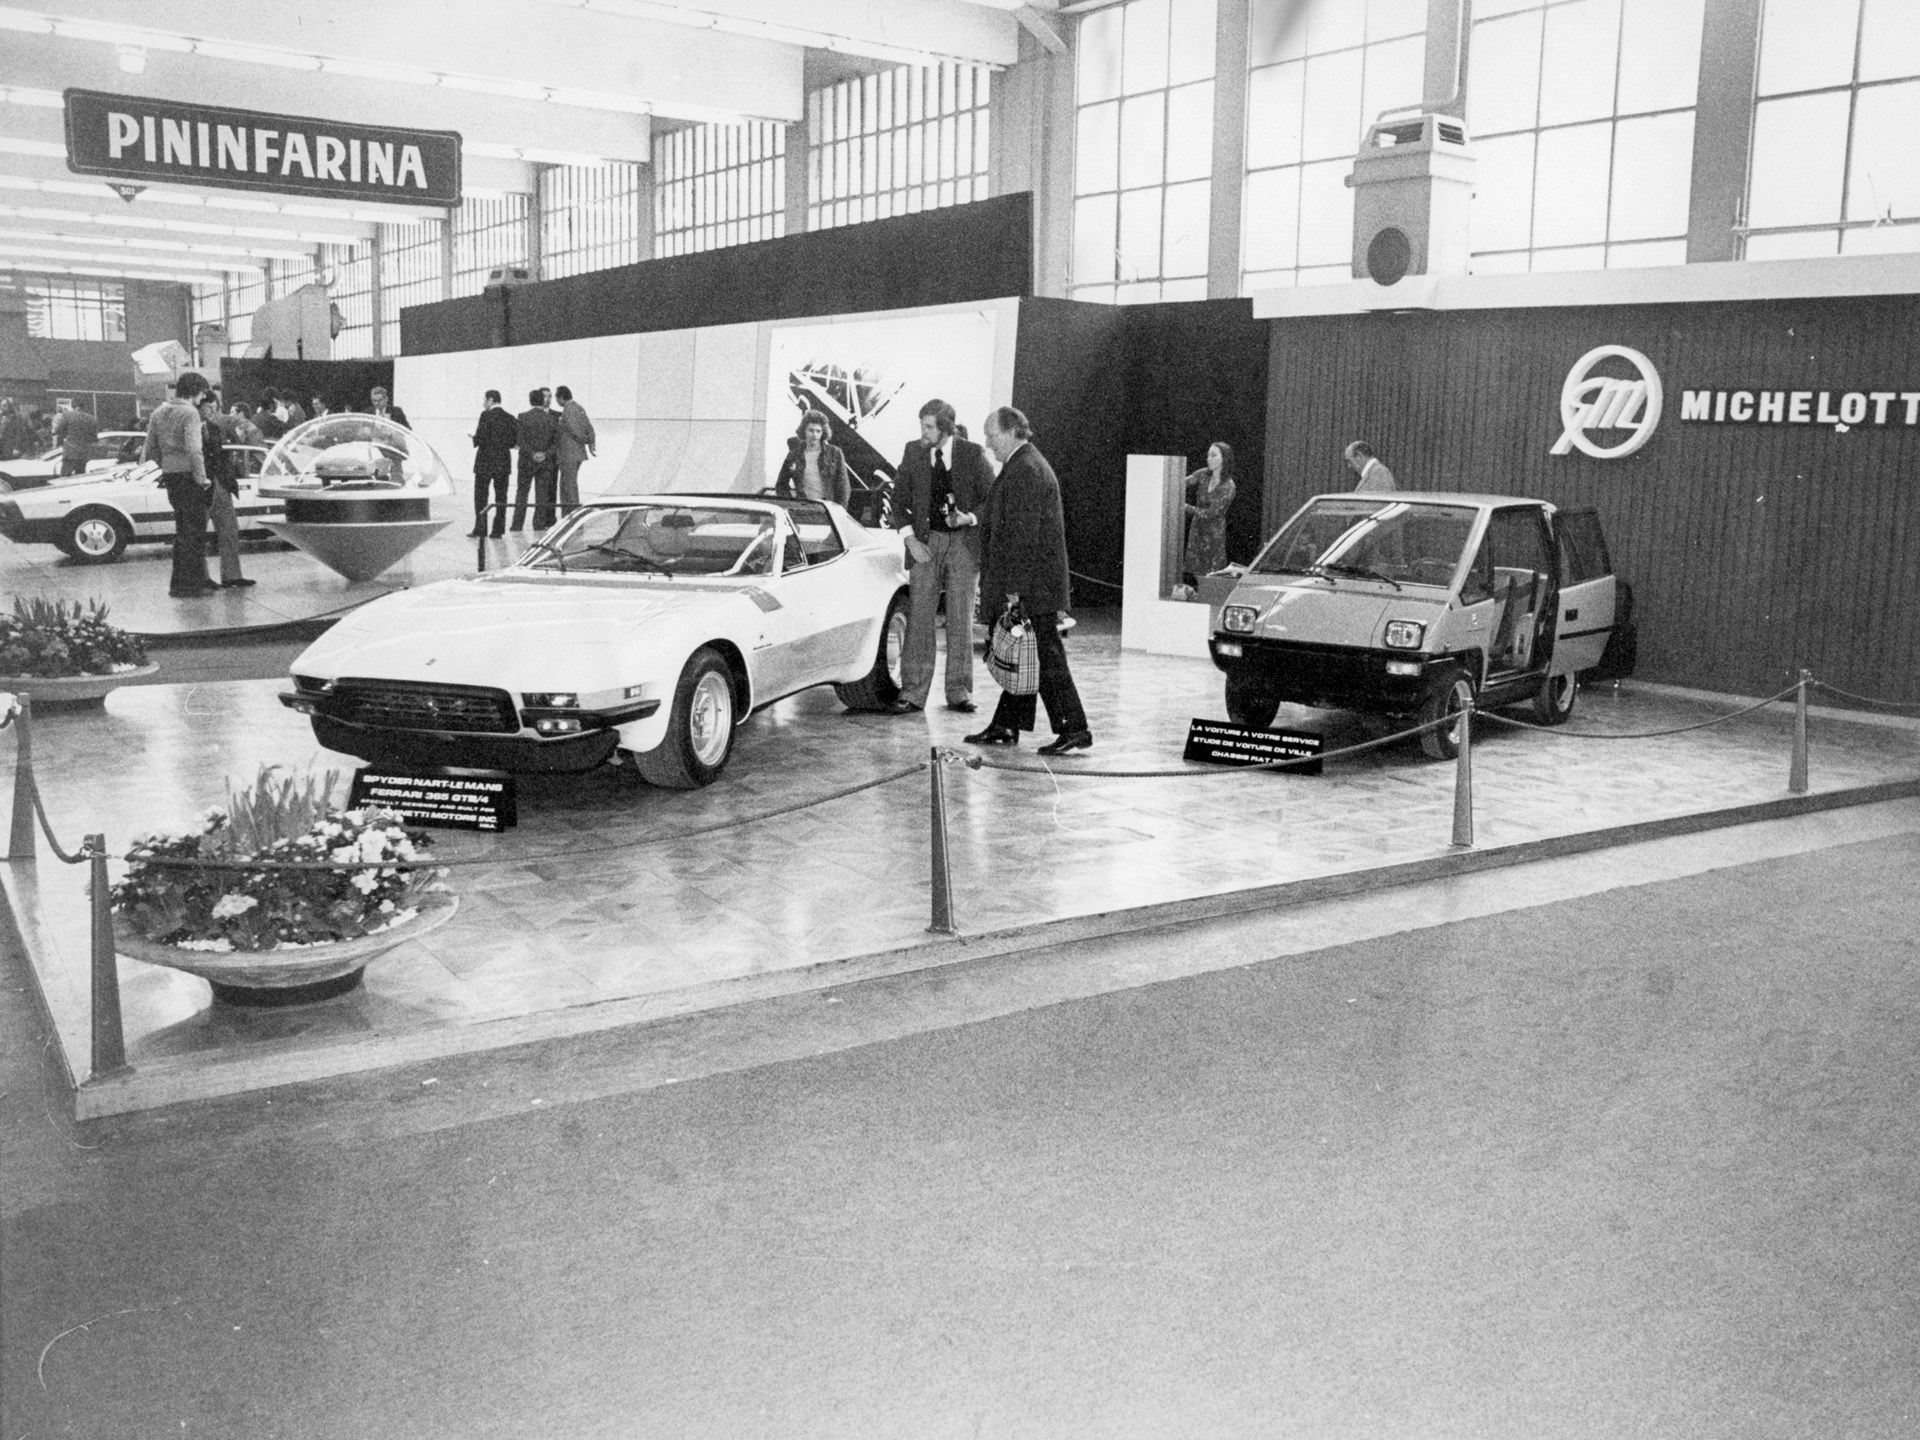 Chassis no. 15965 on the Michelotti stand at the 1975 Geneva Motor Show.